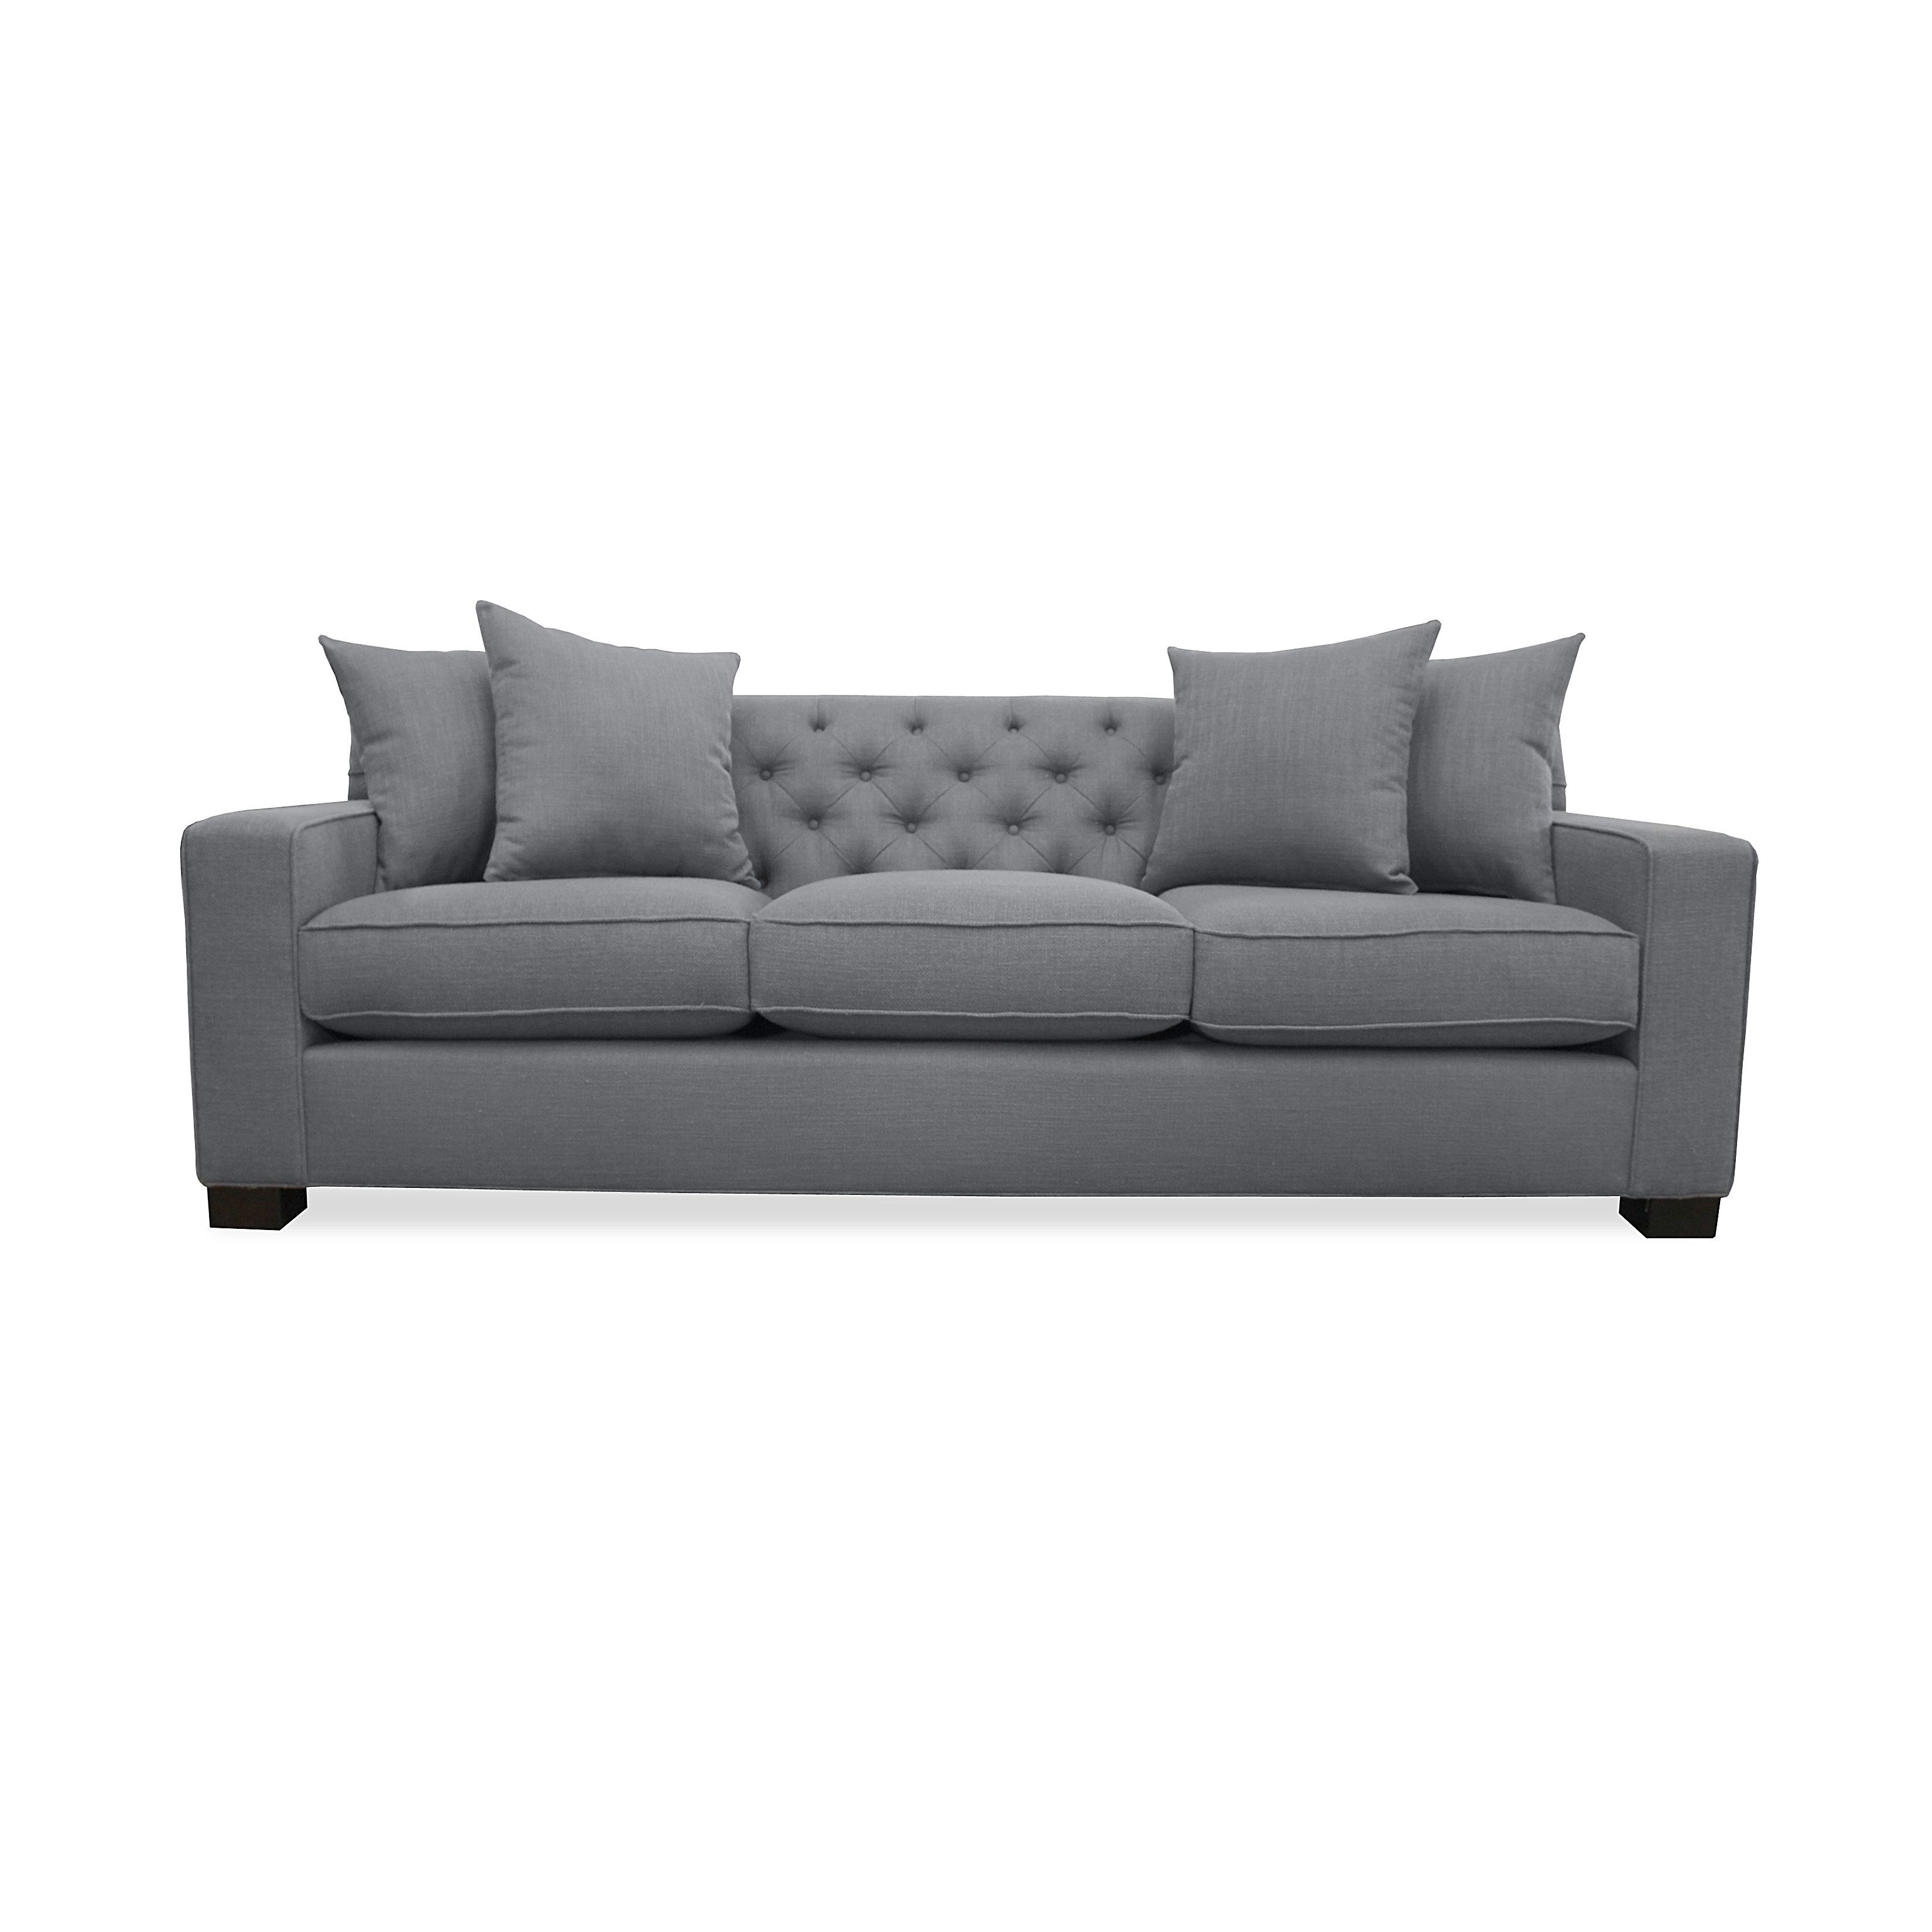 Cassandra Tufted Premium Linen Down Wrapped Sofa   Overstock Shopping    Great Deals On South Cone